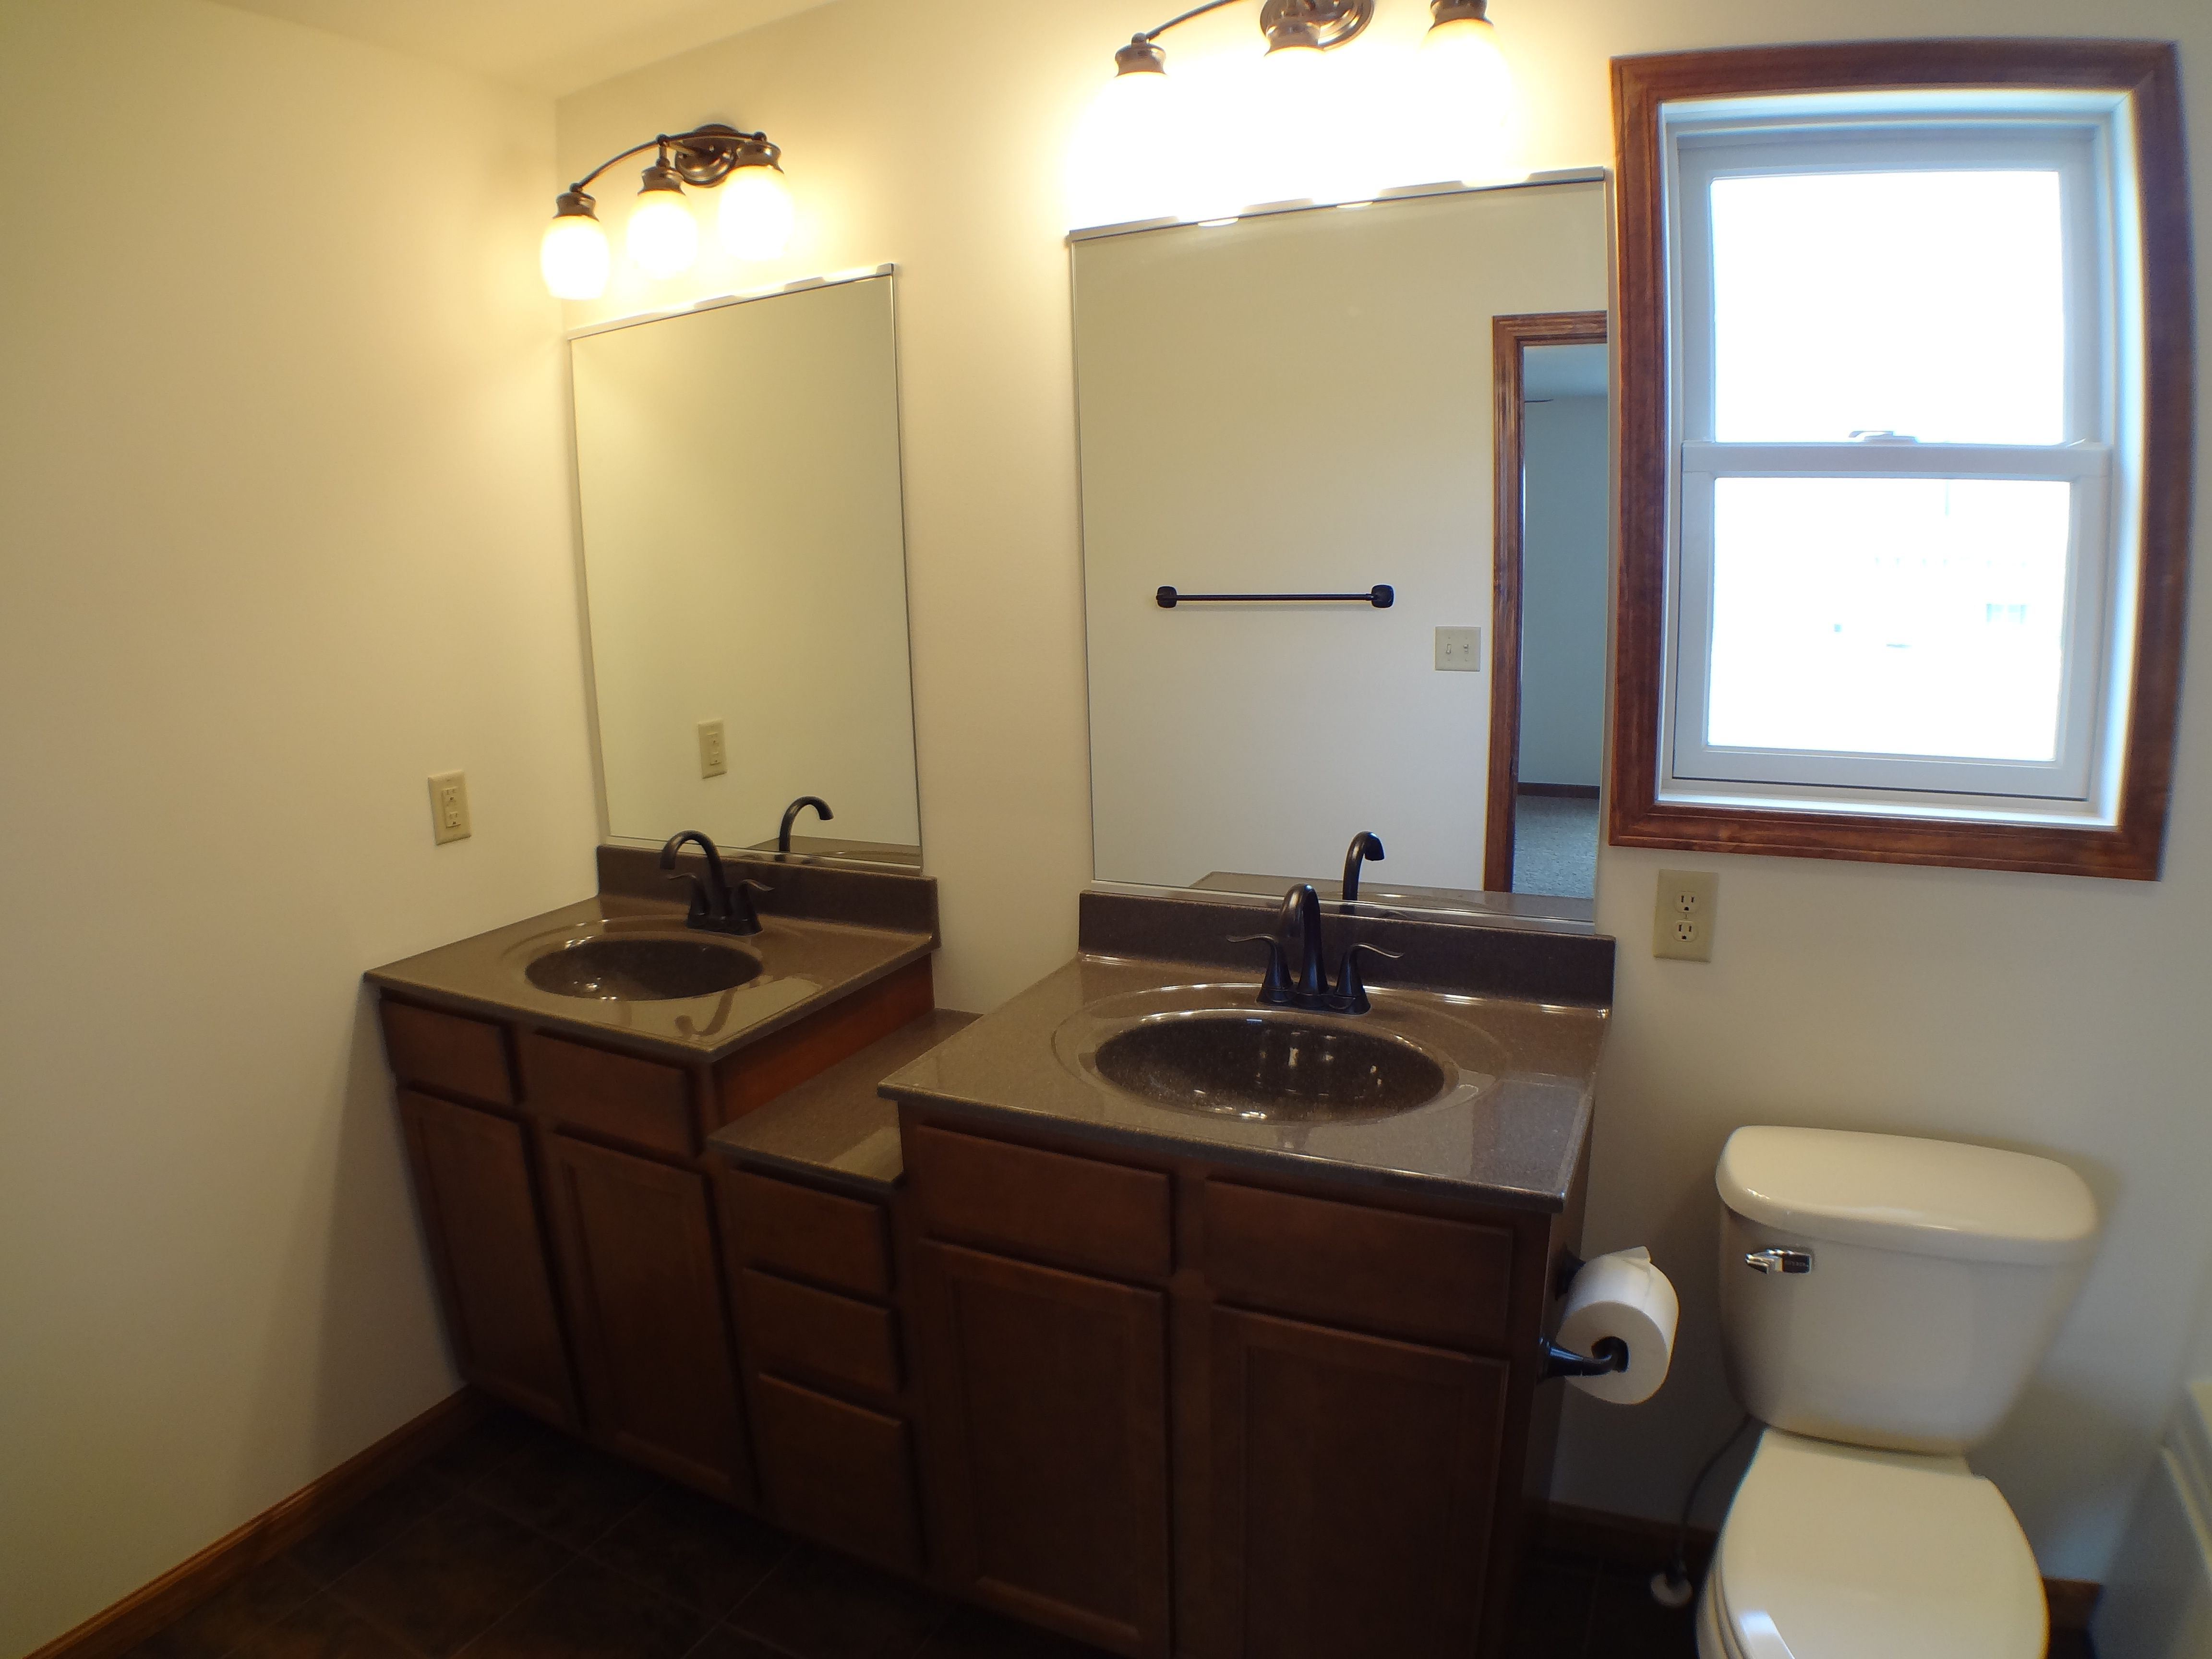 Bathroom featured in the Pemlico By Accent Homes Inc. in Gary, IN